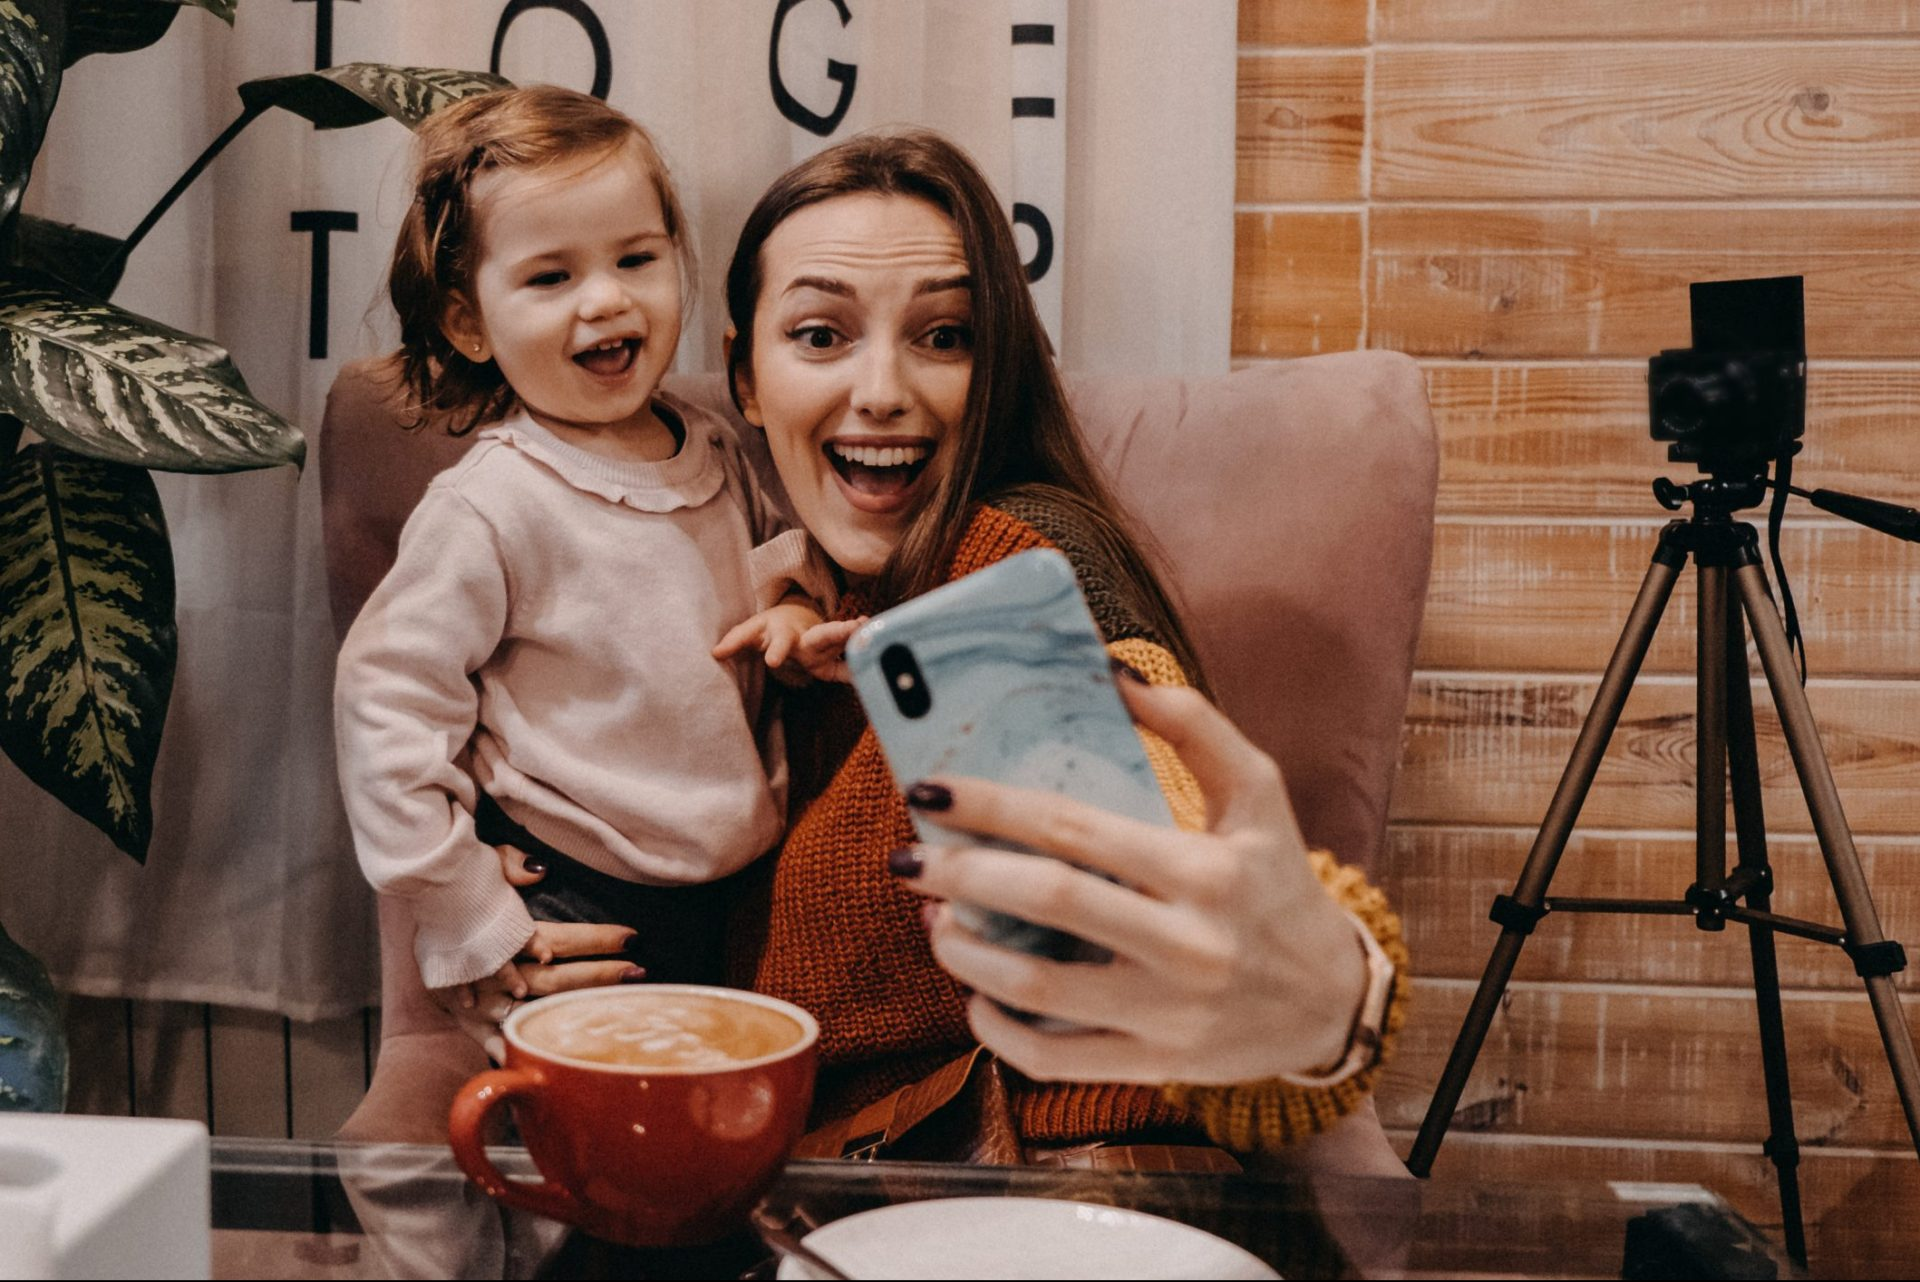 Young parent taking selfie with young child